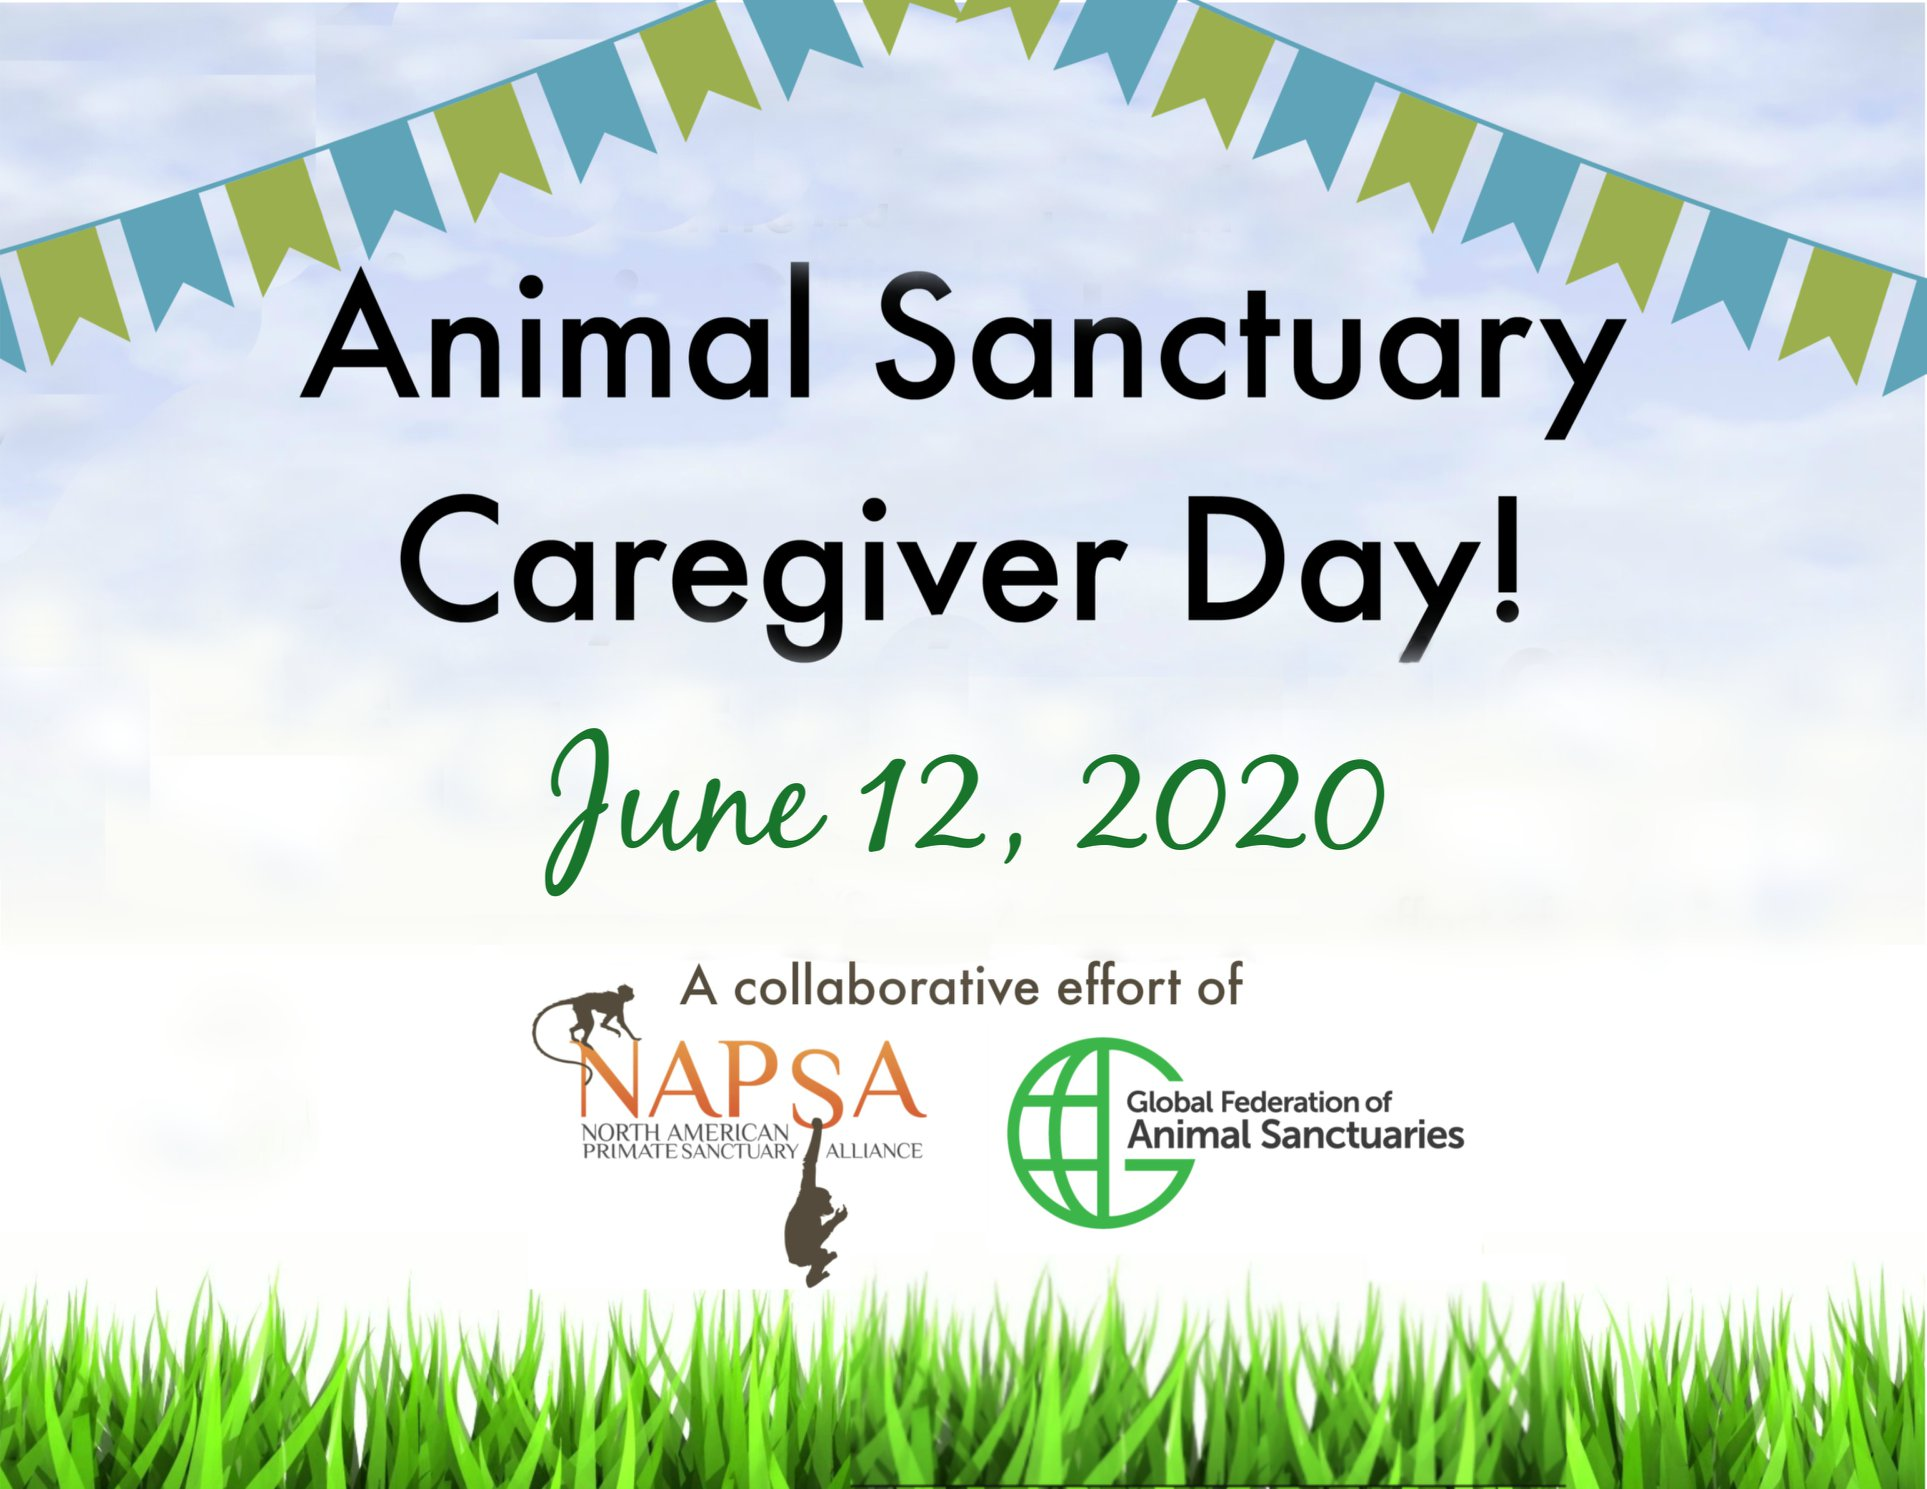 Happy Animal Sanctuary Caregivers Day